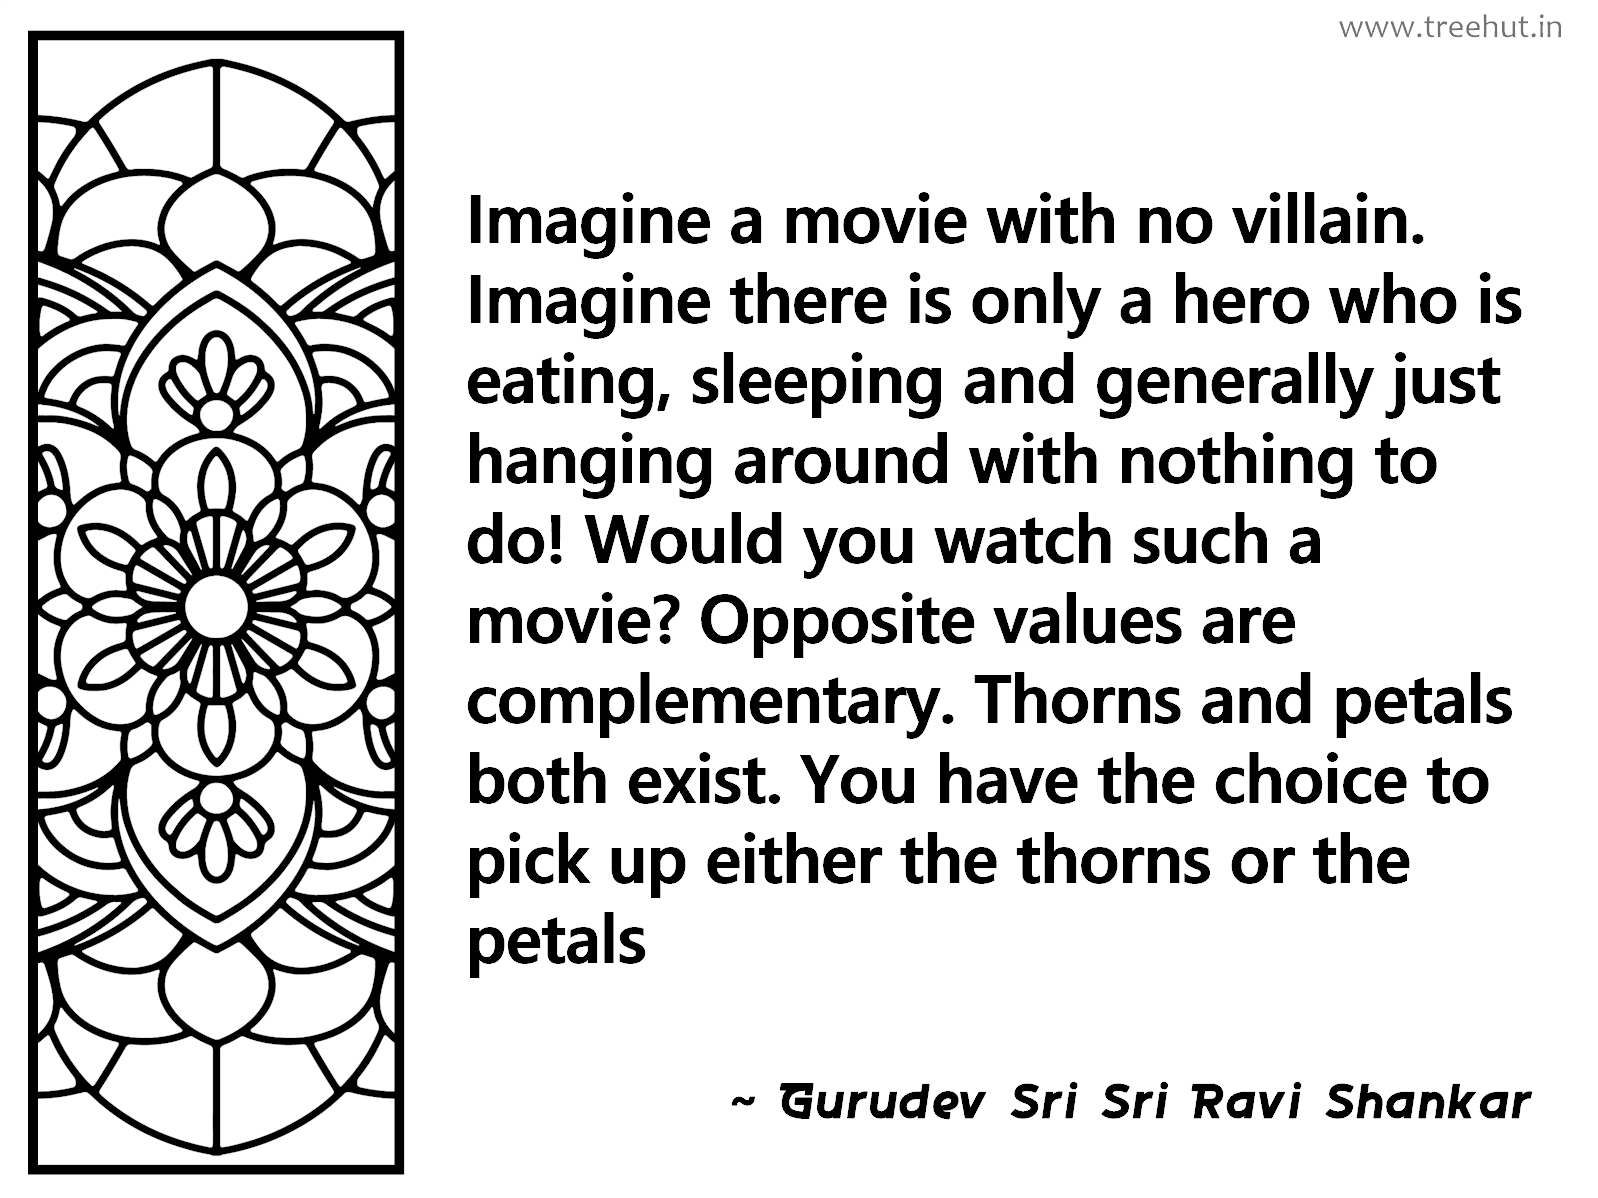 Imagine a movie with no villain. Imagine there is only a hero who is eating, sleeping and generally just hanging around with nothing to do! Would you watch such a movie? Opposite values are complementary. Thorns and petals both exist. You have the choice to pick up either the thorns or the petals Inspirational Quote by Gurudev Sri Sri Ravi Shankar, coloring pages